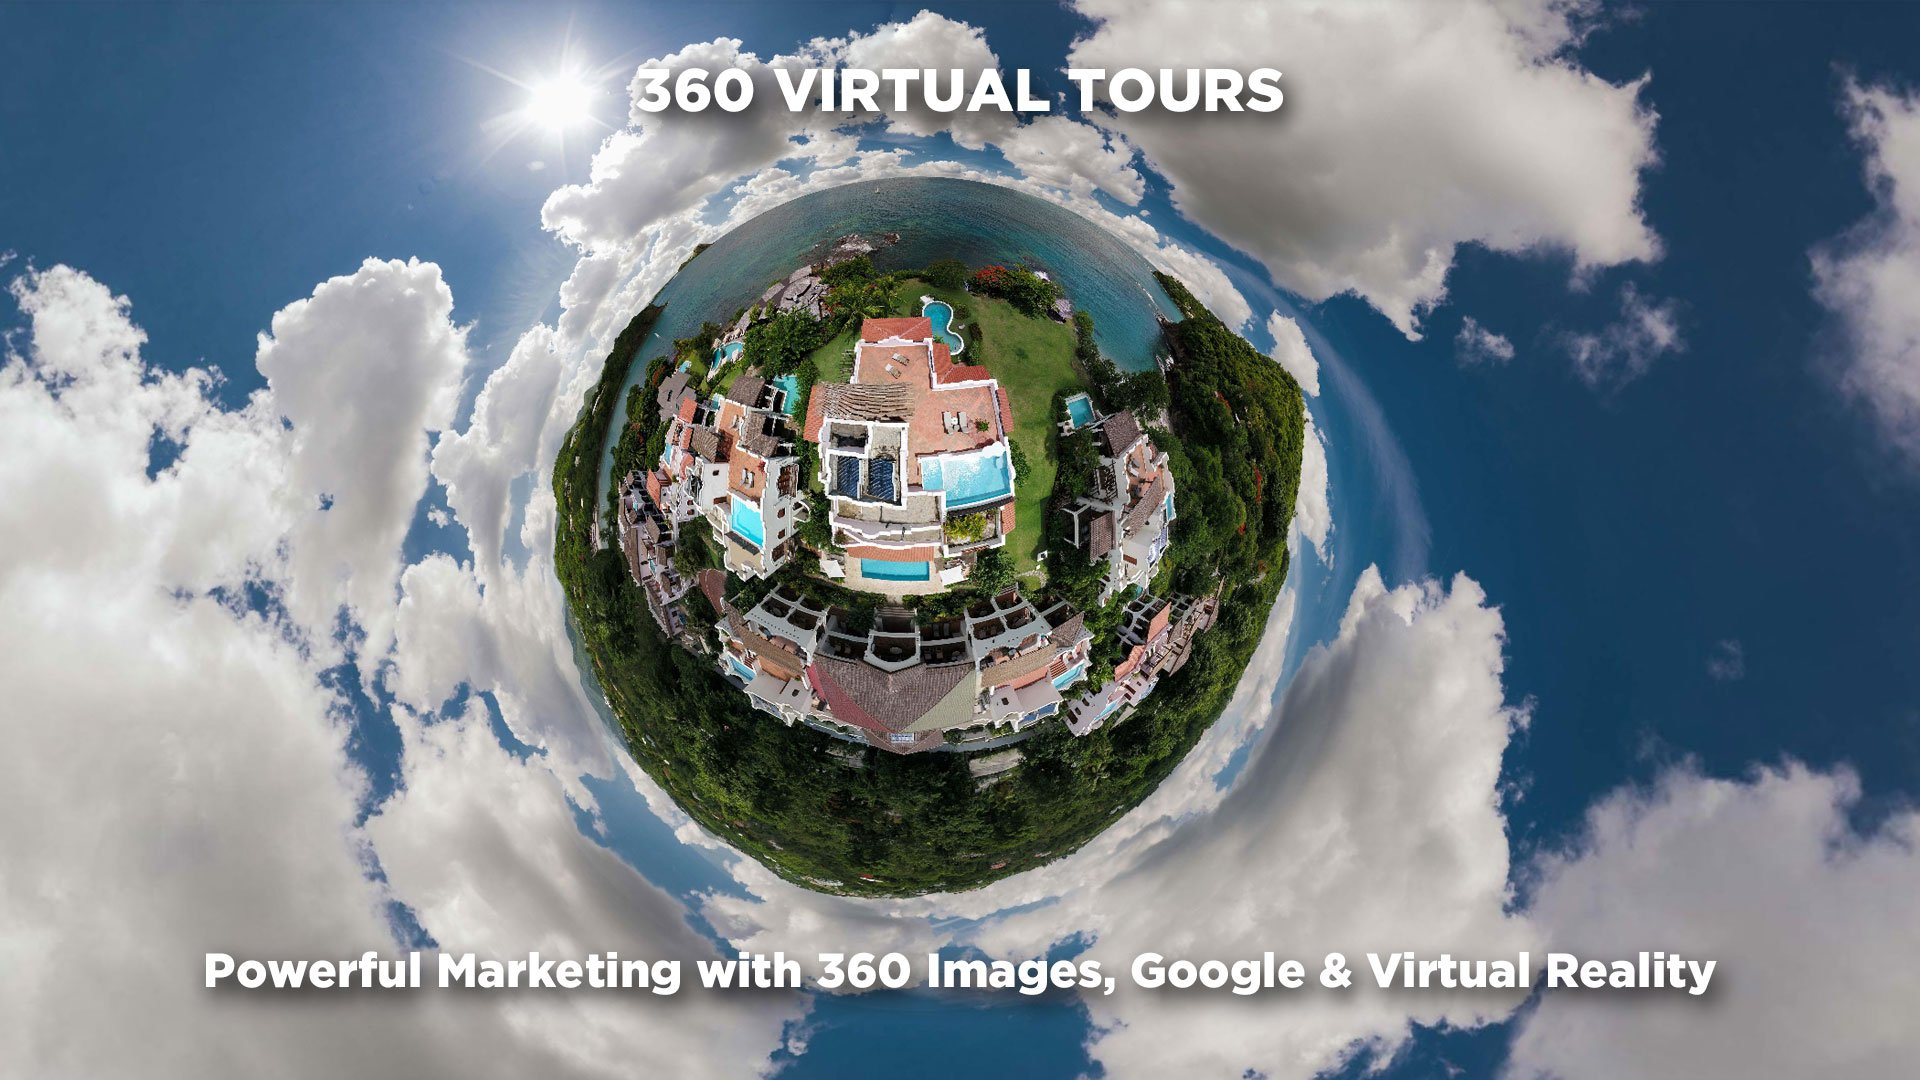 Virtual Tours: Powerful Marketing 360 Images, Google & Virtual Reality